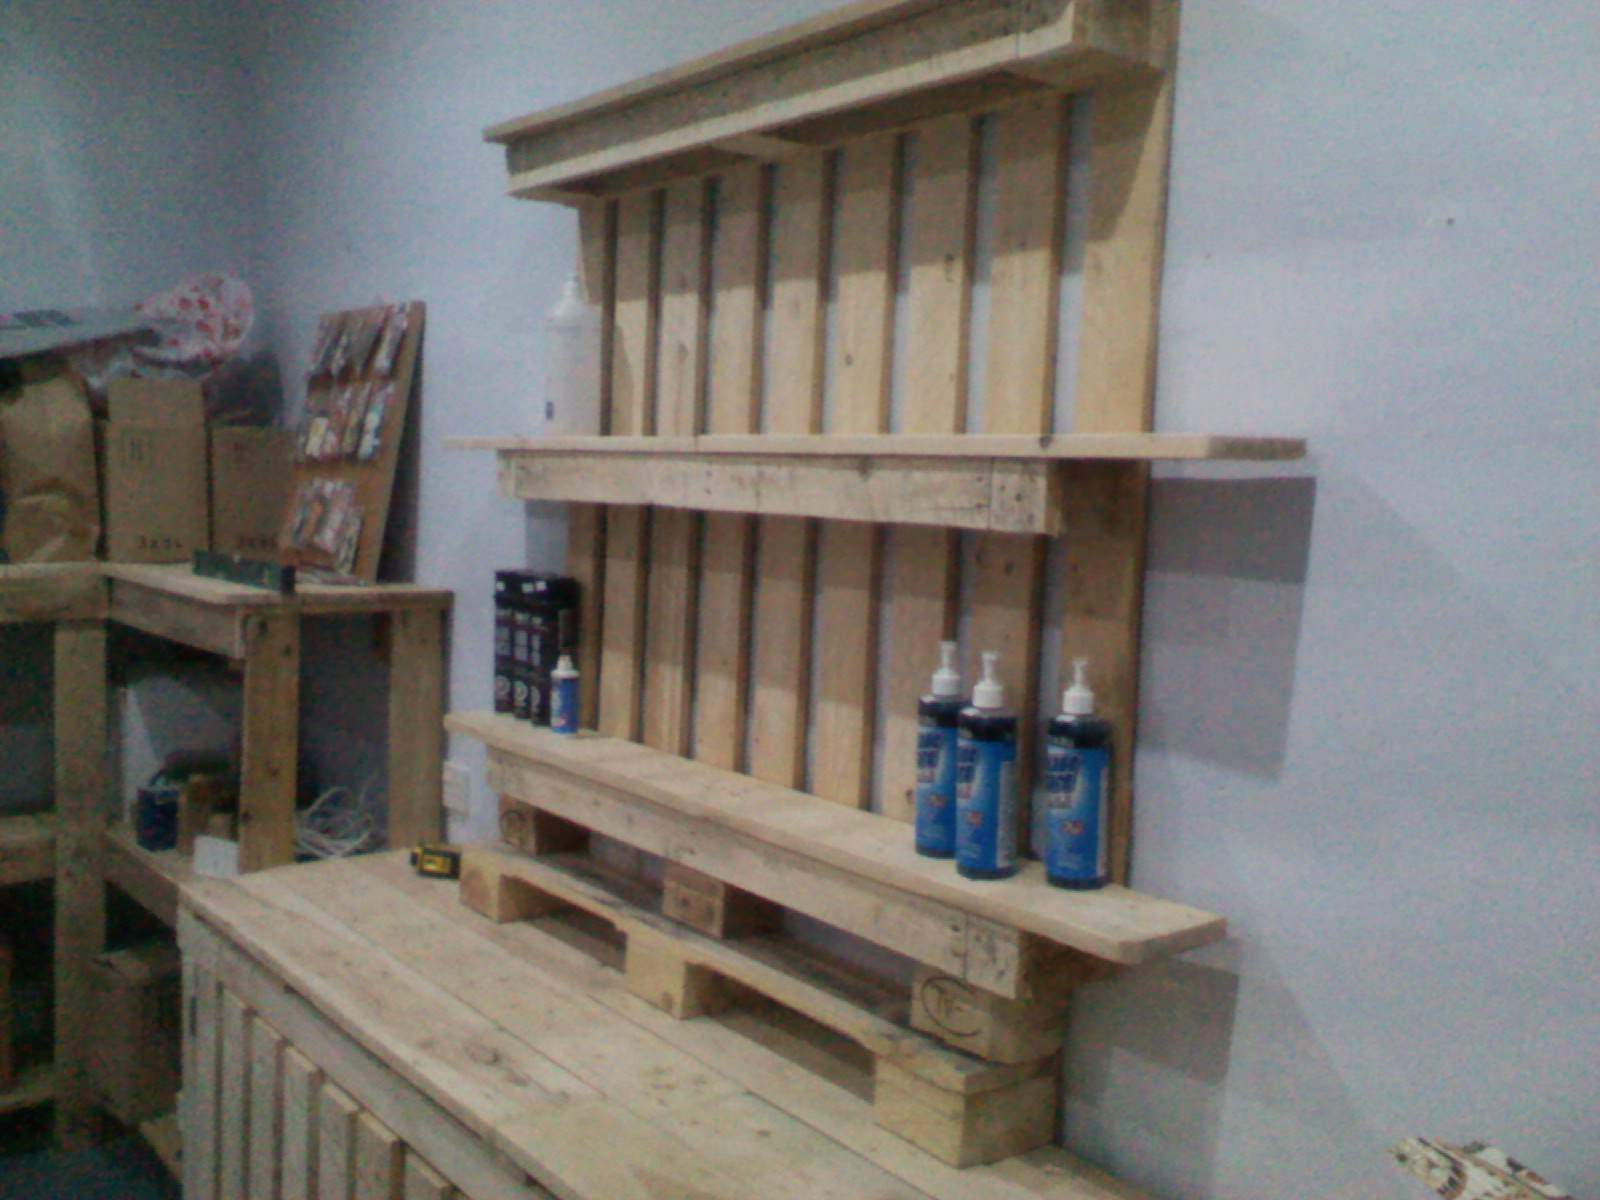 Shop furniture made out of discarded pallets 1001 pallets for Living room furniture made out of pallets